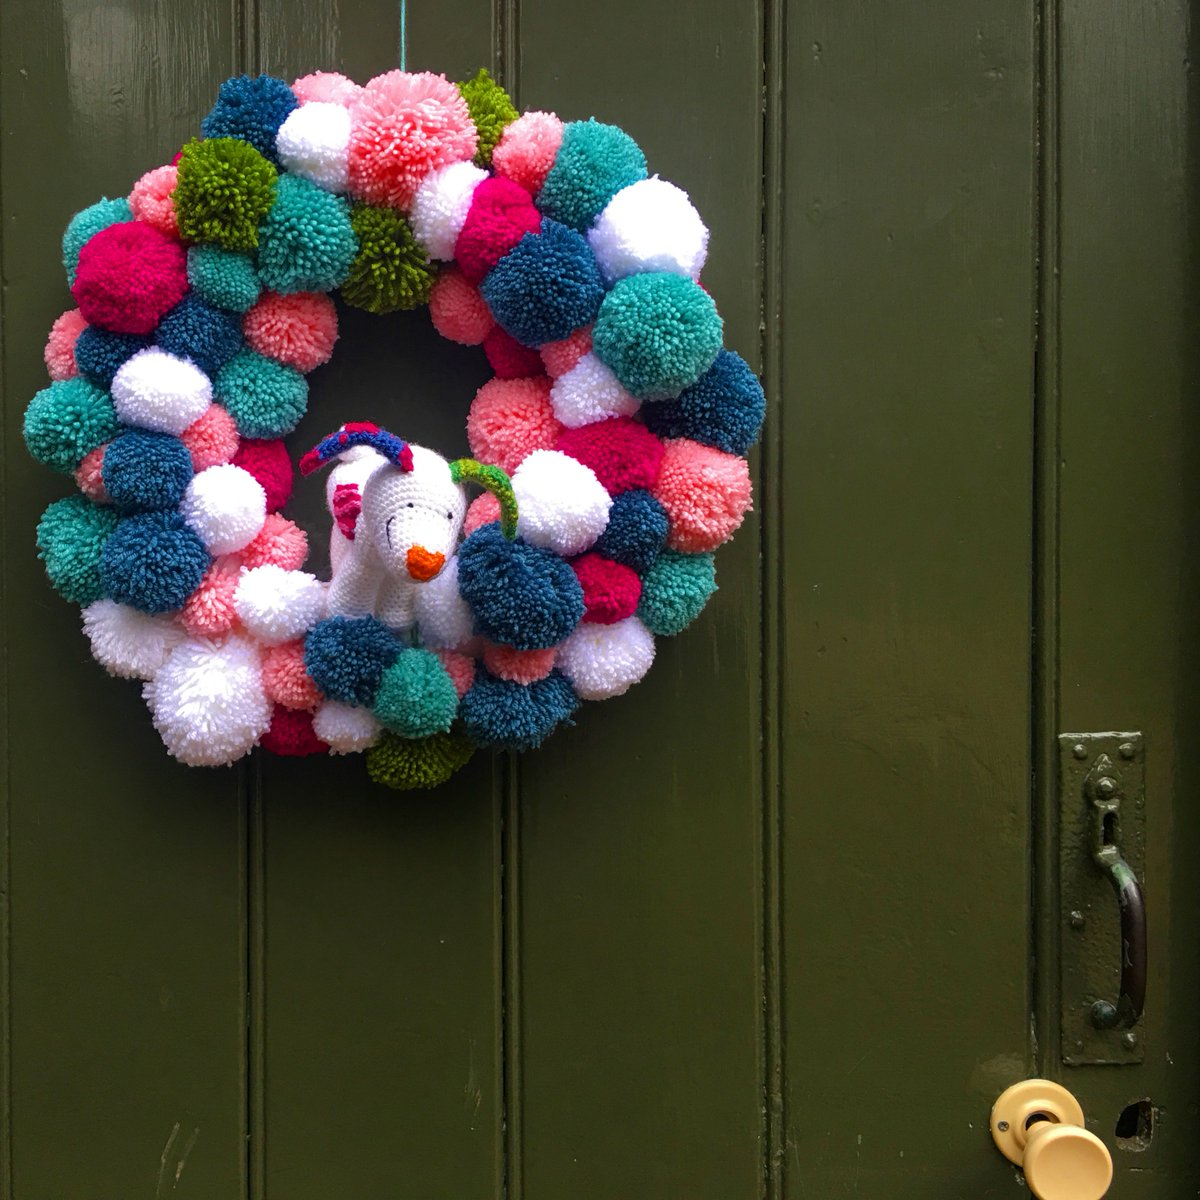 Nymansnt On Twitter Drop In Christmas Crafts This Weekend Inspired By Knitted Textures In The Snowman And The Snowdog Make A Sock Puppet Snowdog Pom Pom Baubles Or A Woollen Mini Http Wreath 11am 3pm 3